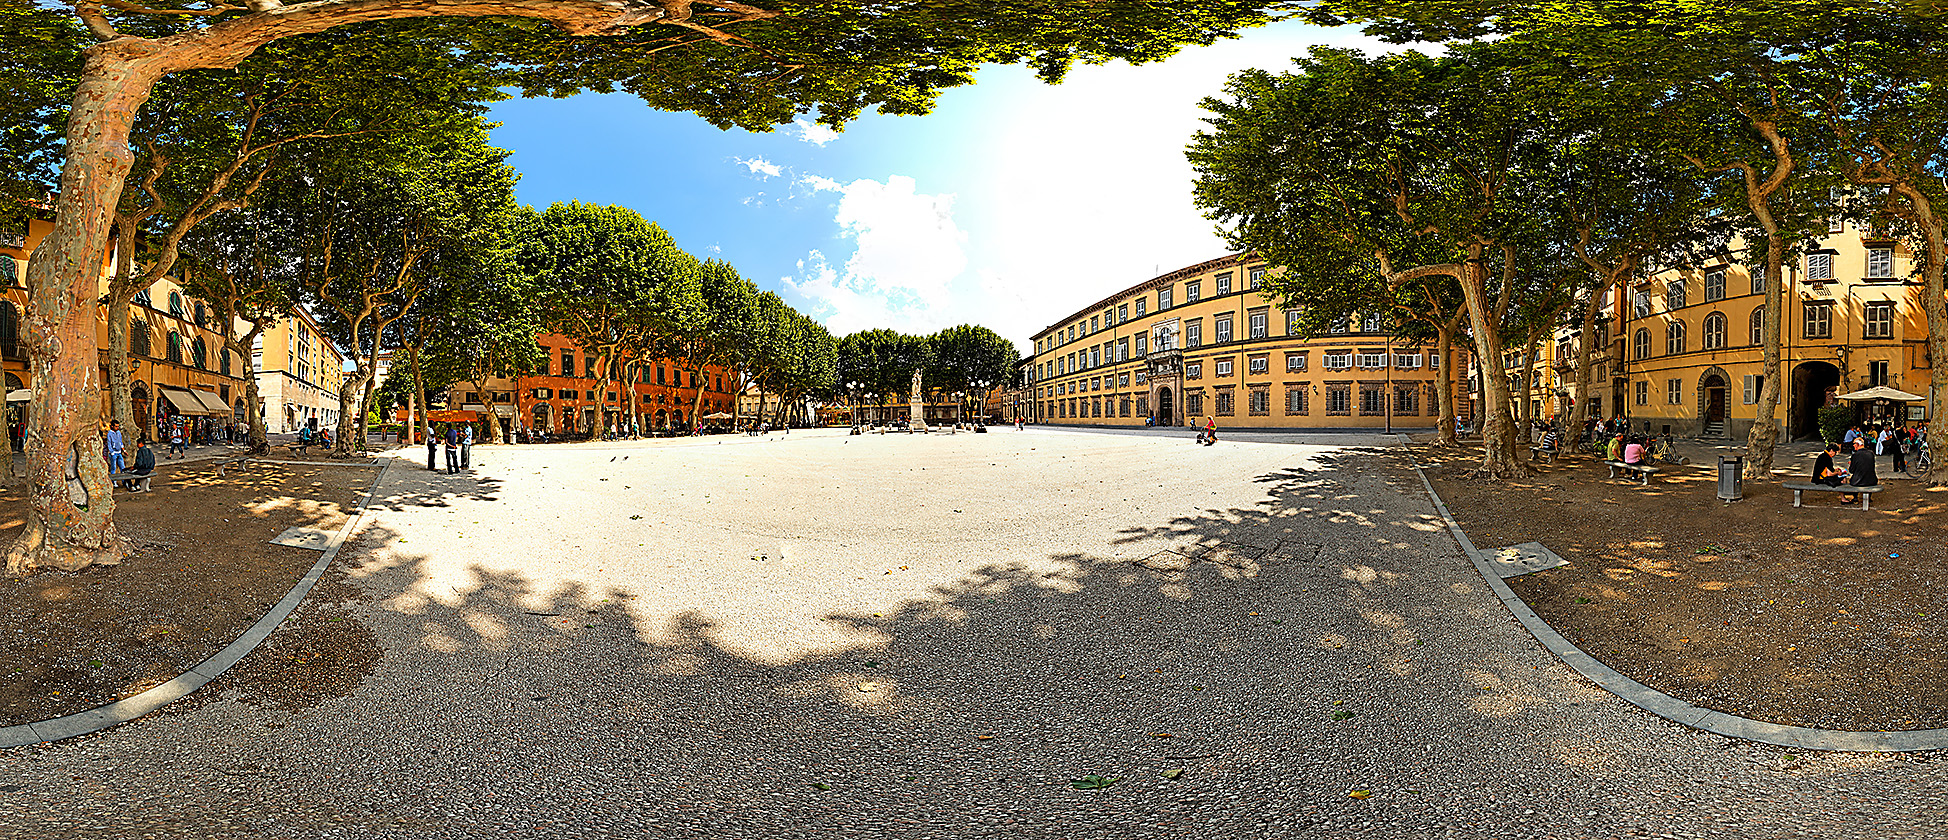 2009_06_PANOS IMG_0613 ITALY_Lucca Pano Piazza Napoleone_PanoramicC